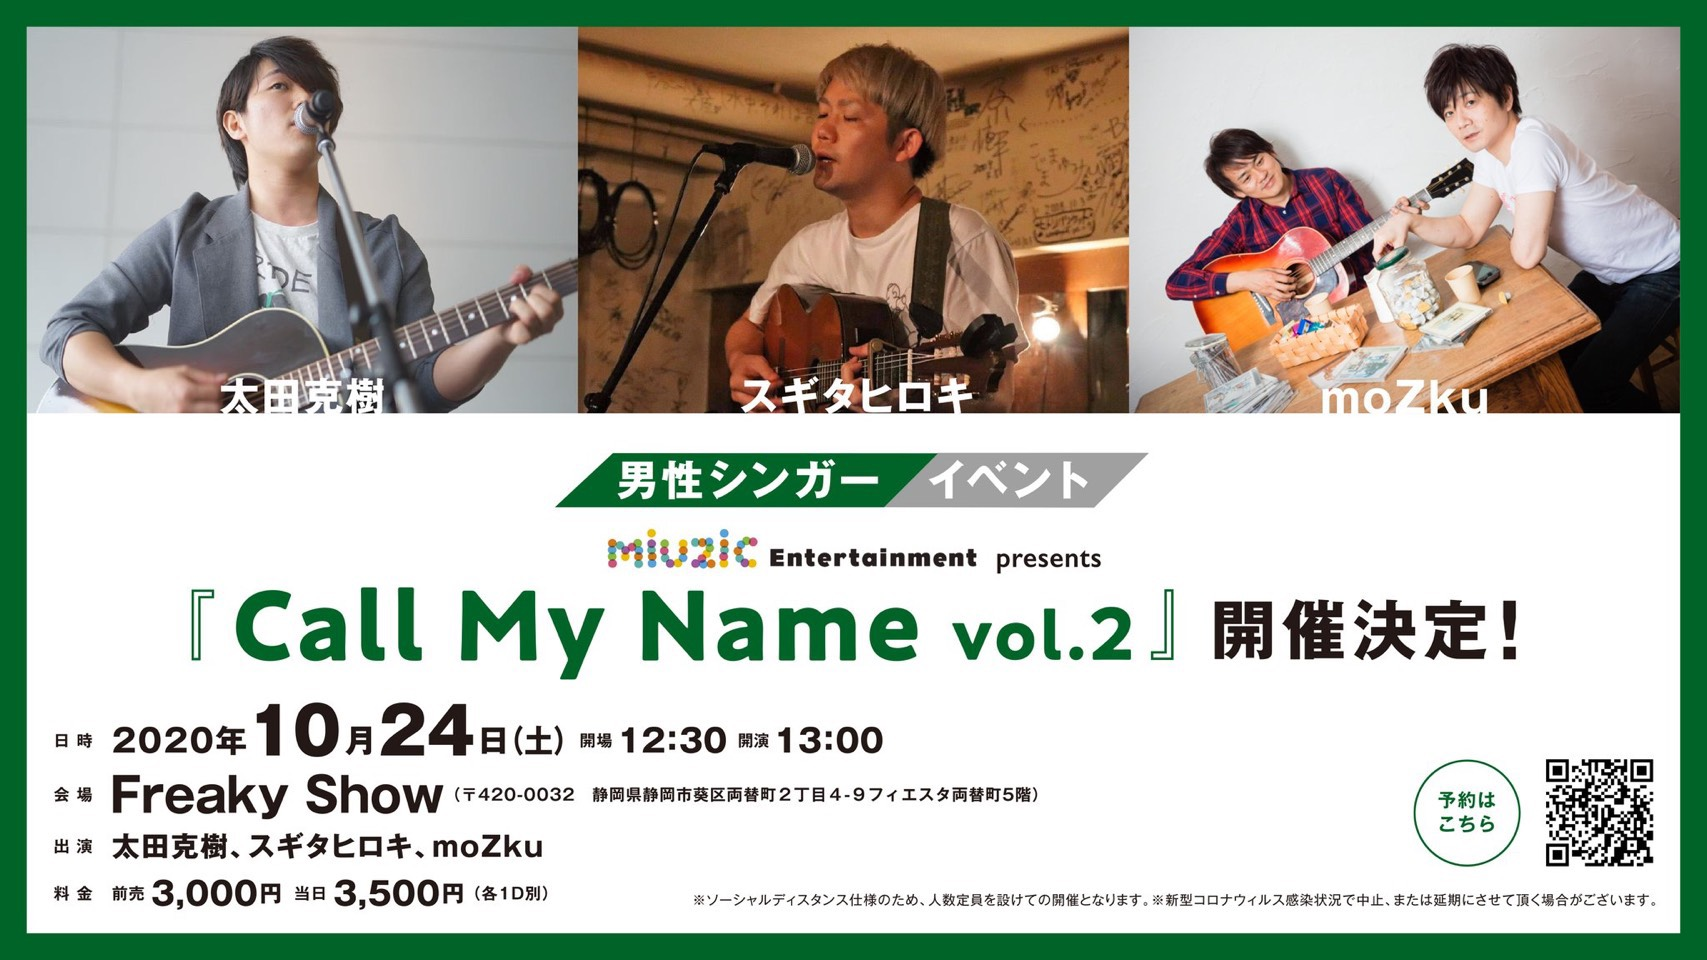 miuzic Entertainment Presents「Call My Name vol.2」